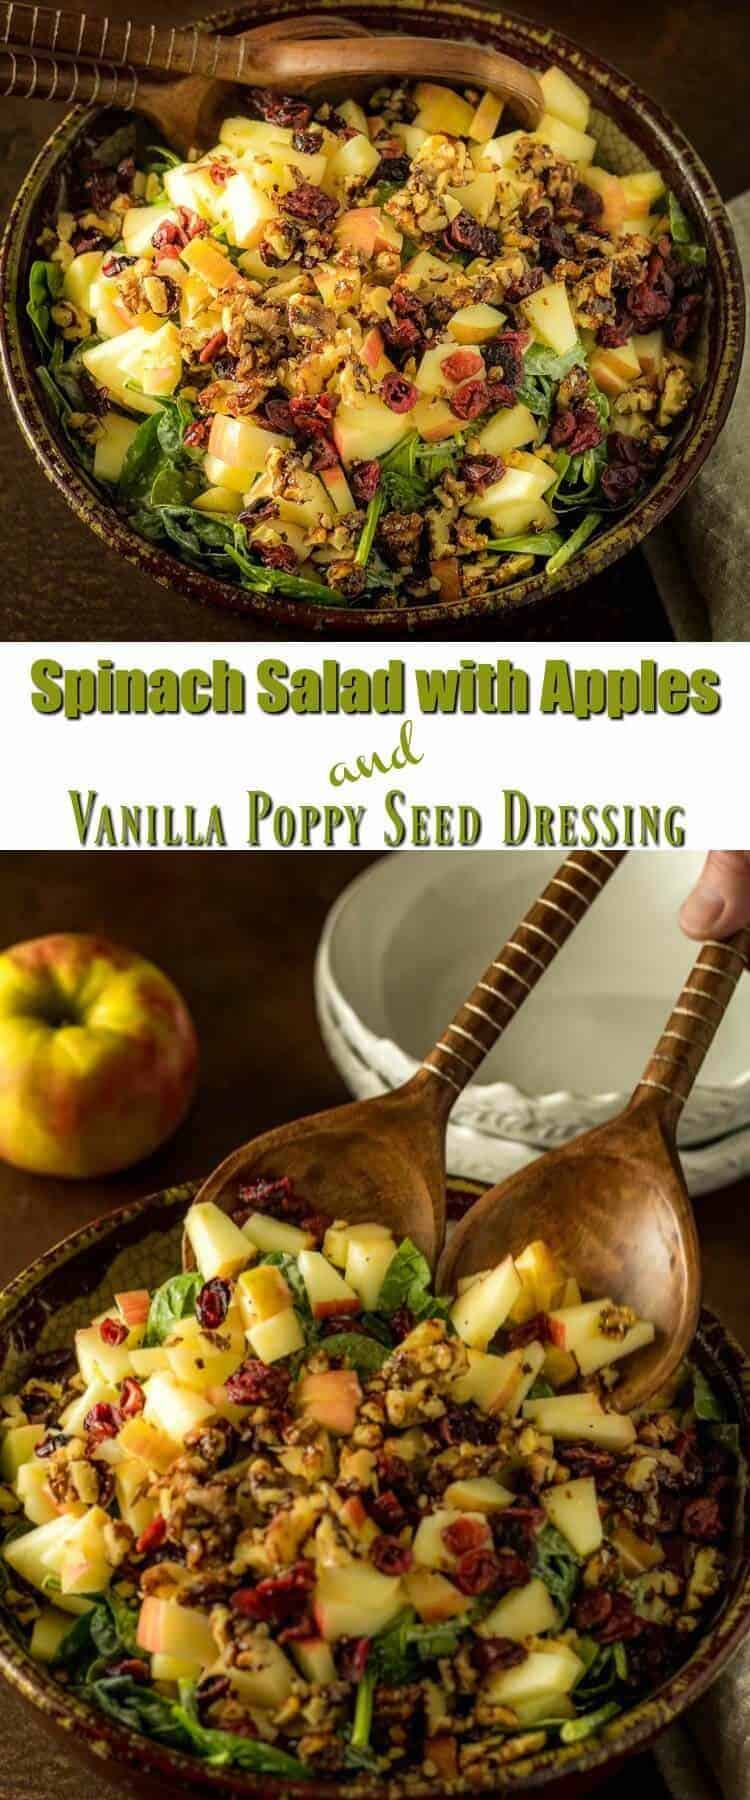 Spinach Salad with Apples and Vanilla Poppy Seed Dressing Pin - A great way to enjoy apples at their peak, Spinach Salad with Apples and Vanilla Poppy Seed Dressing combines nutrient-rich baby spinach with crisp apples, candied walnuts, and dried cranberries (or cherries). It all gets drizzled with a tangy, yogurt based poppy seed dressing! A perfect fall side dish... #applerecipes #spinachandapplesalad #vanillapoppyseeddressing #glutenfree #quicksides #healthysides #craisins